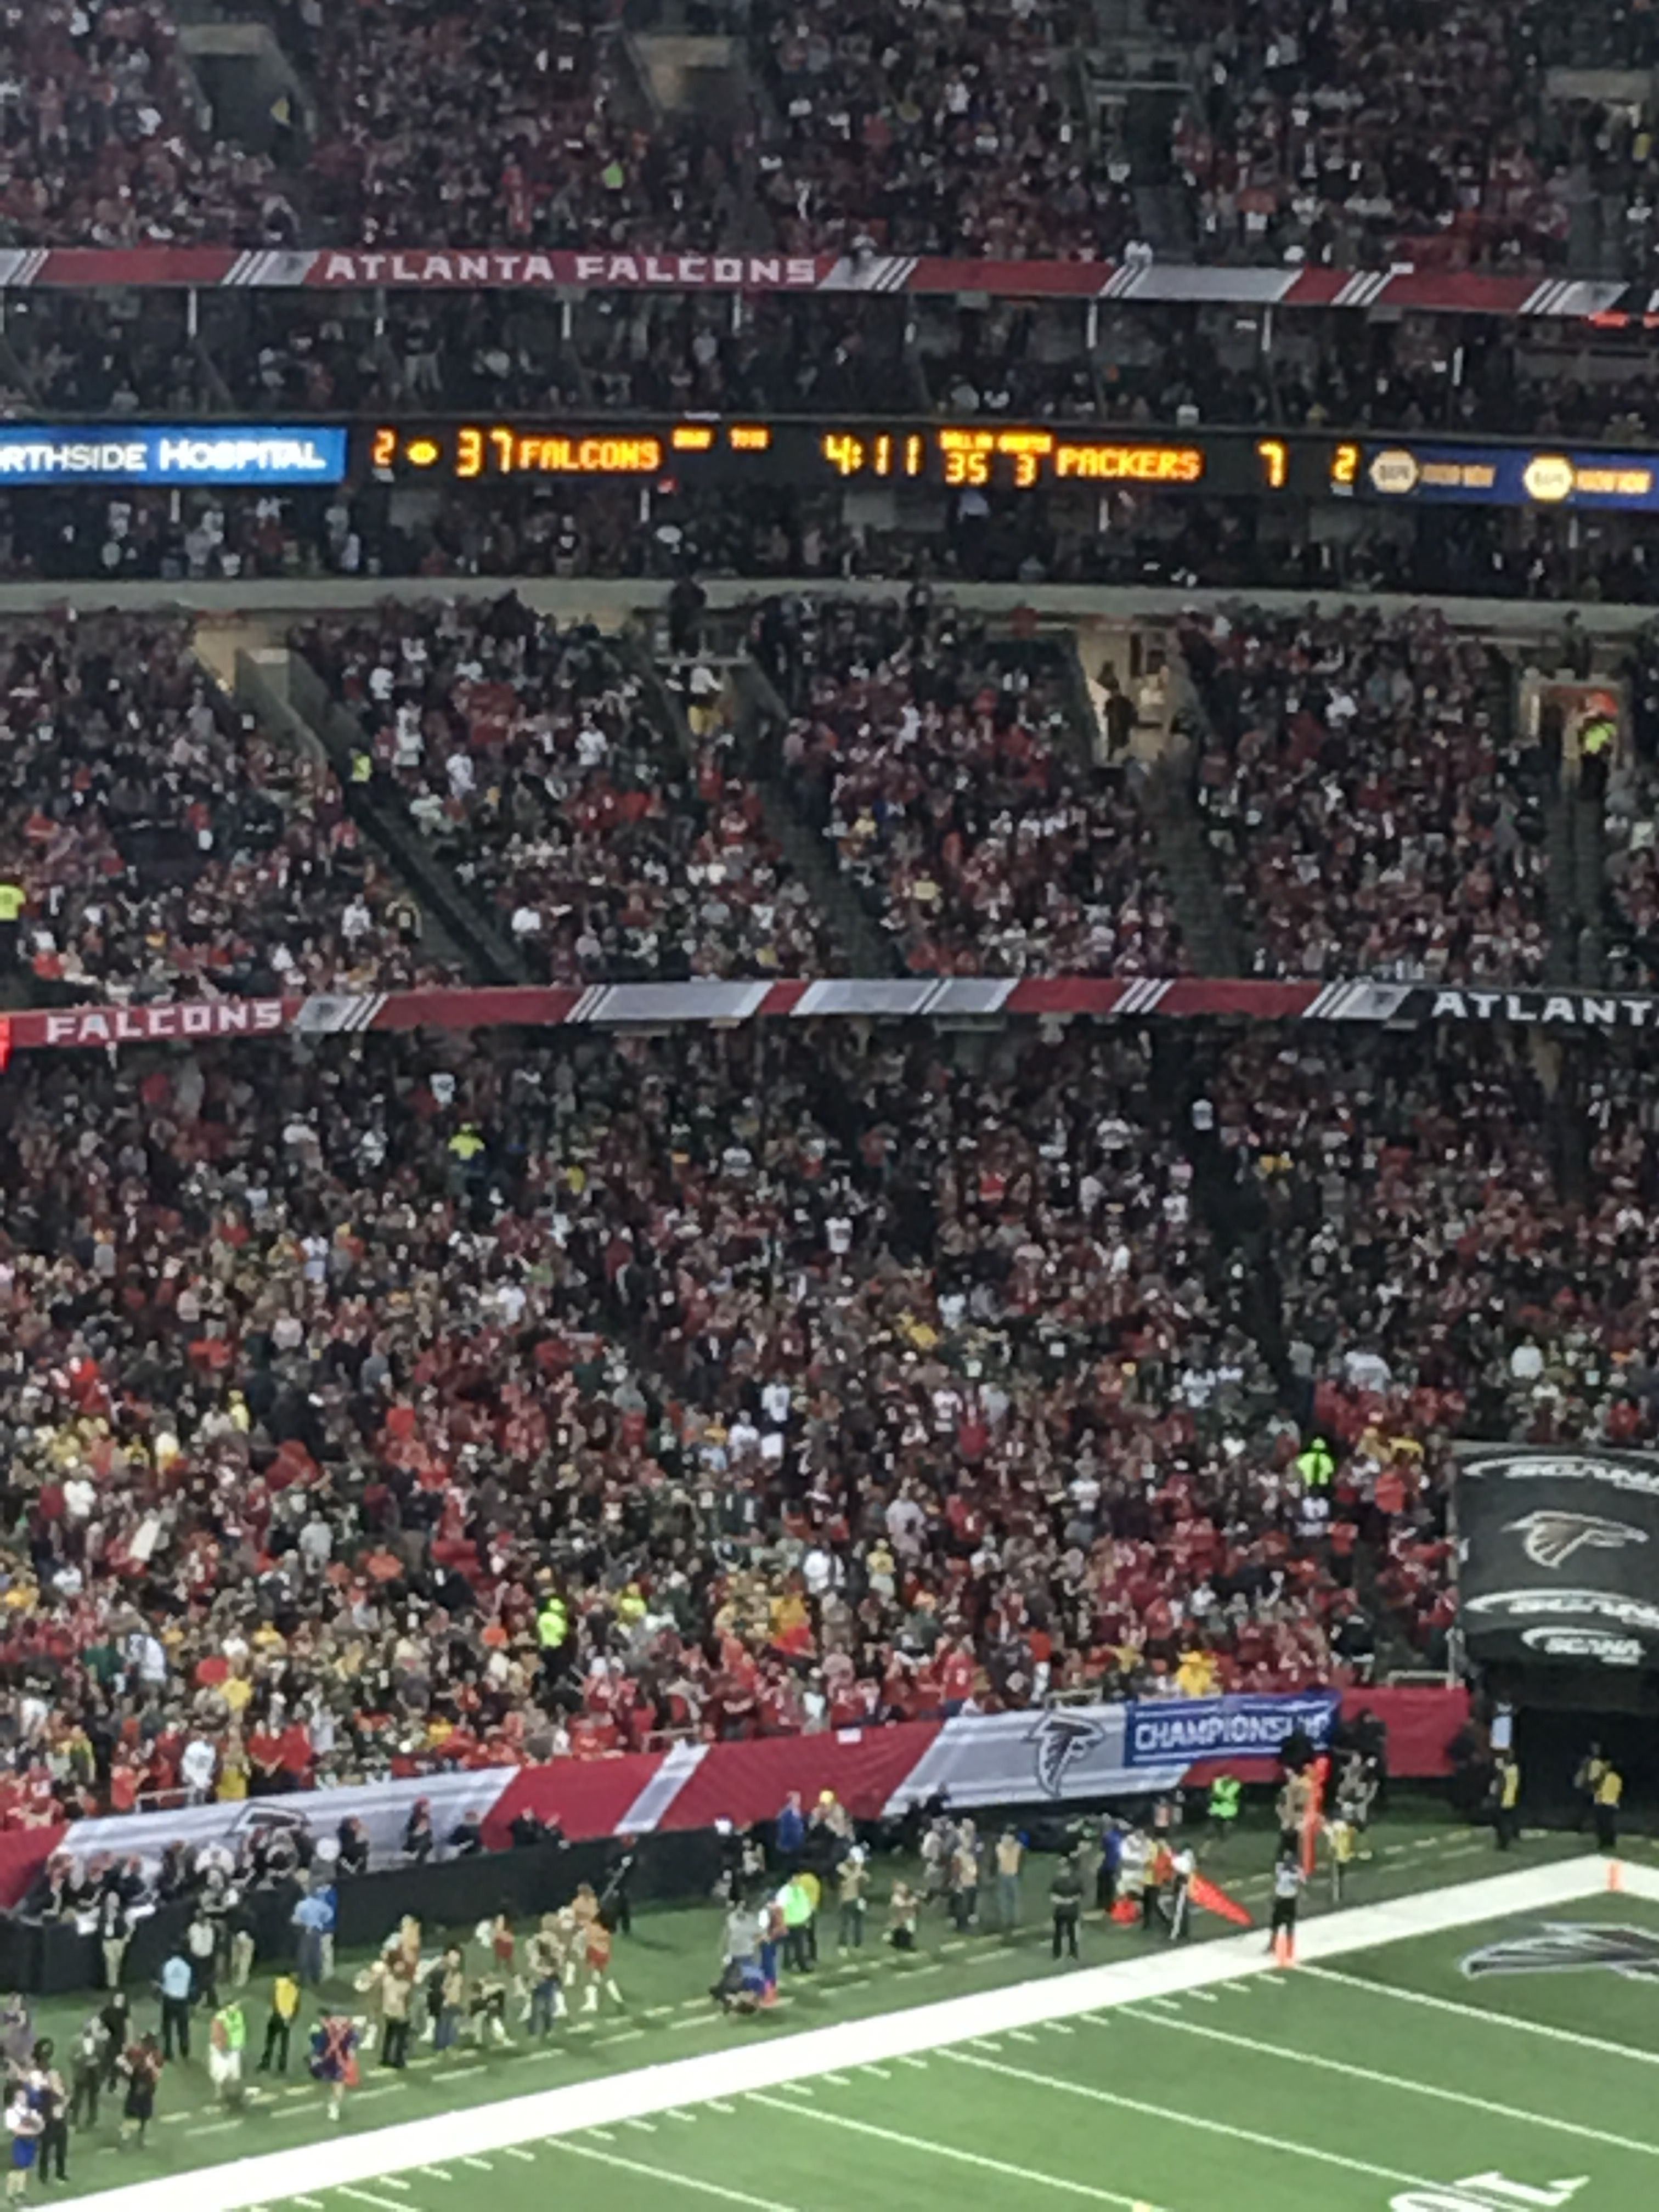 Atlanta Falcons Vs Green Bay Packers 2017 Nfc Championship Game Score Board Late In The Game Packers Fans Were Nfc Championship Game Georgia Dome Packers Fan